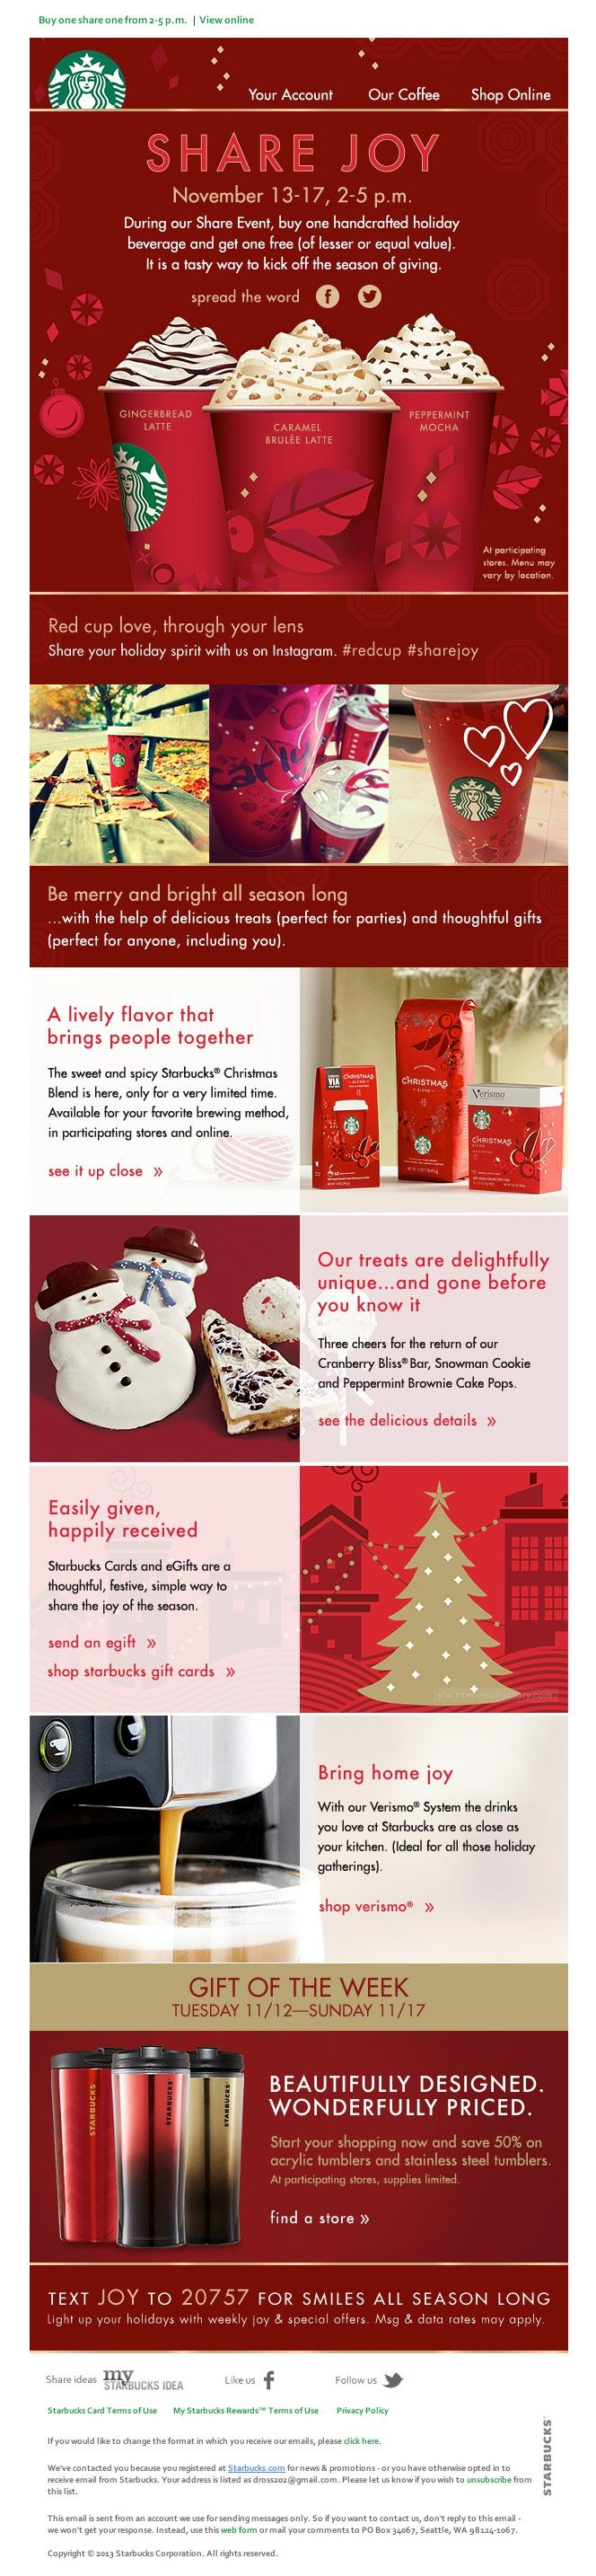 Share Joy, Starbucks holiday promotion email example